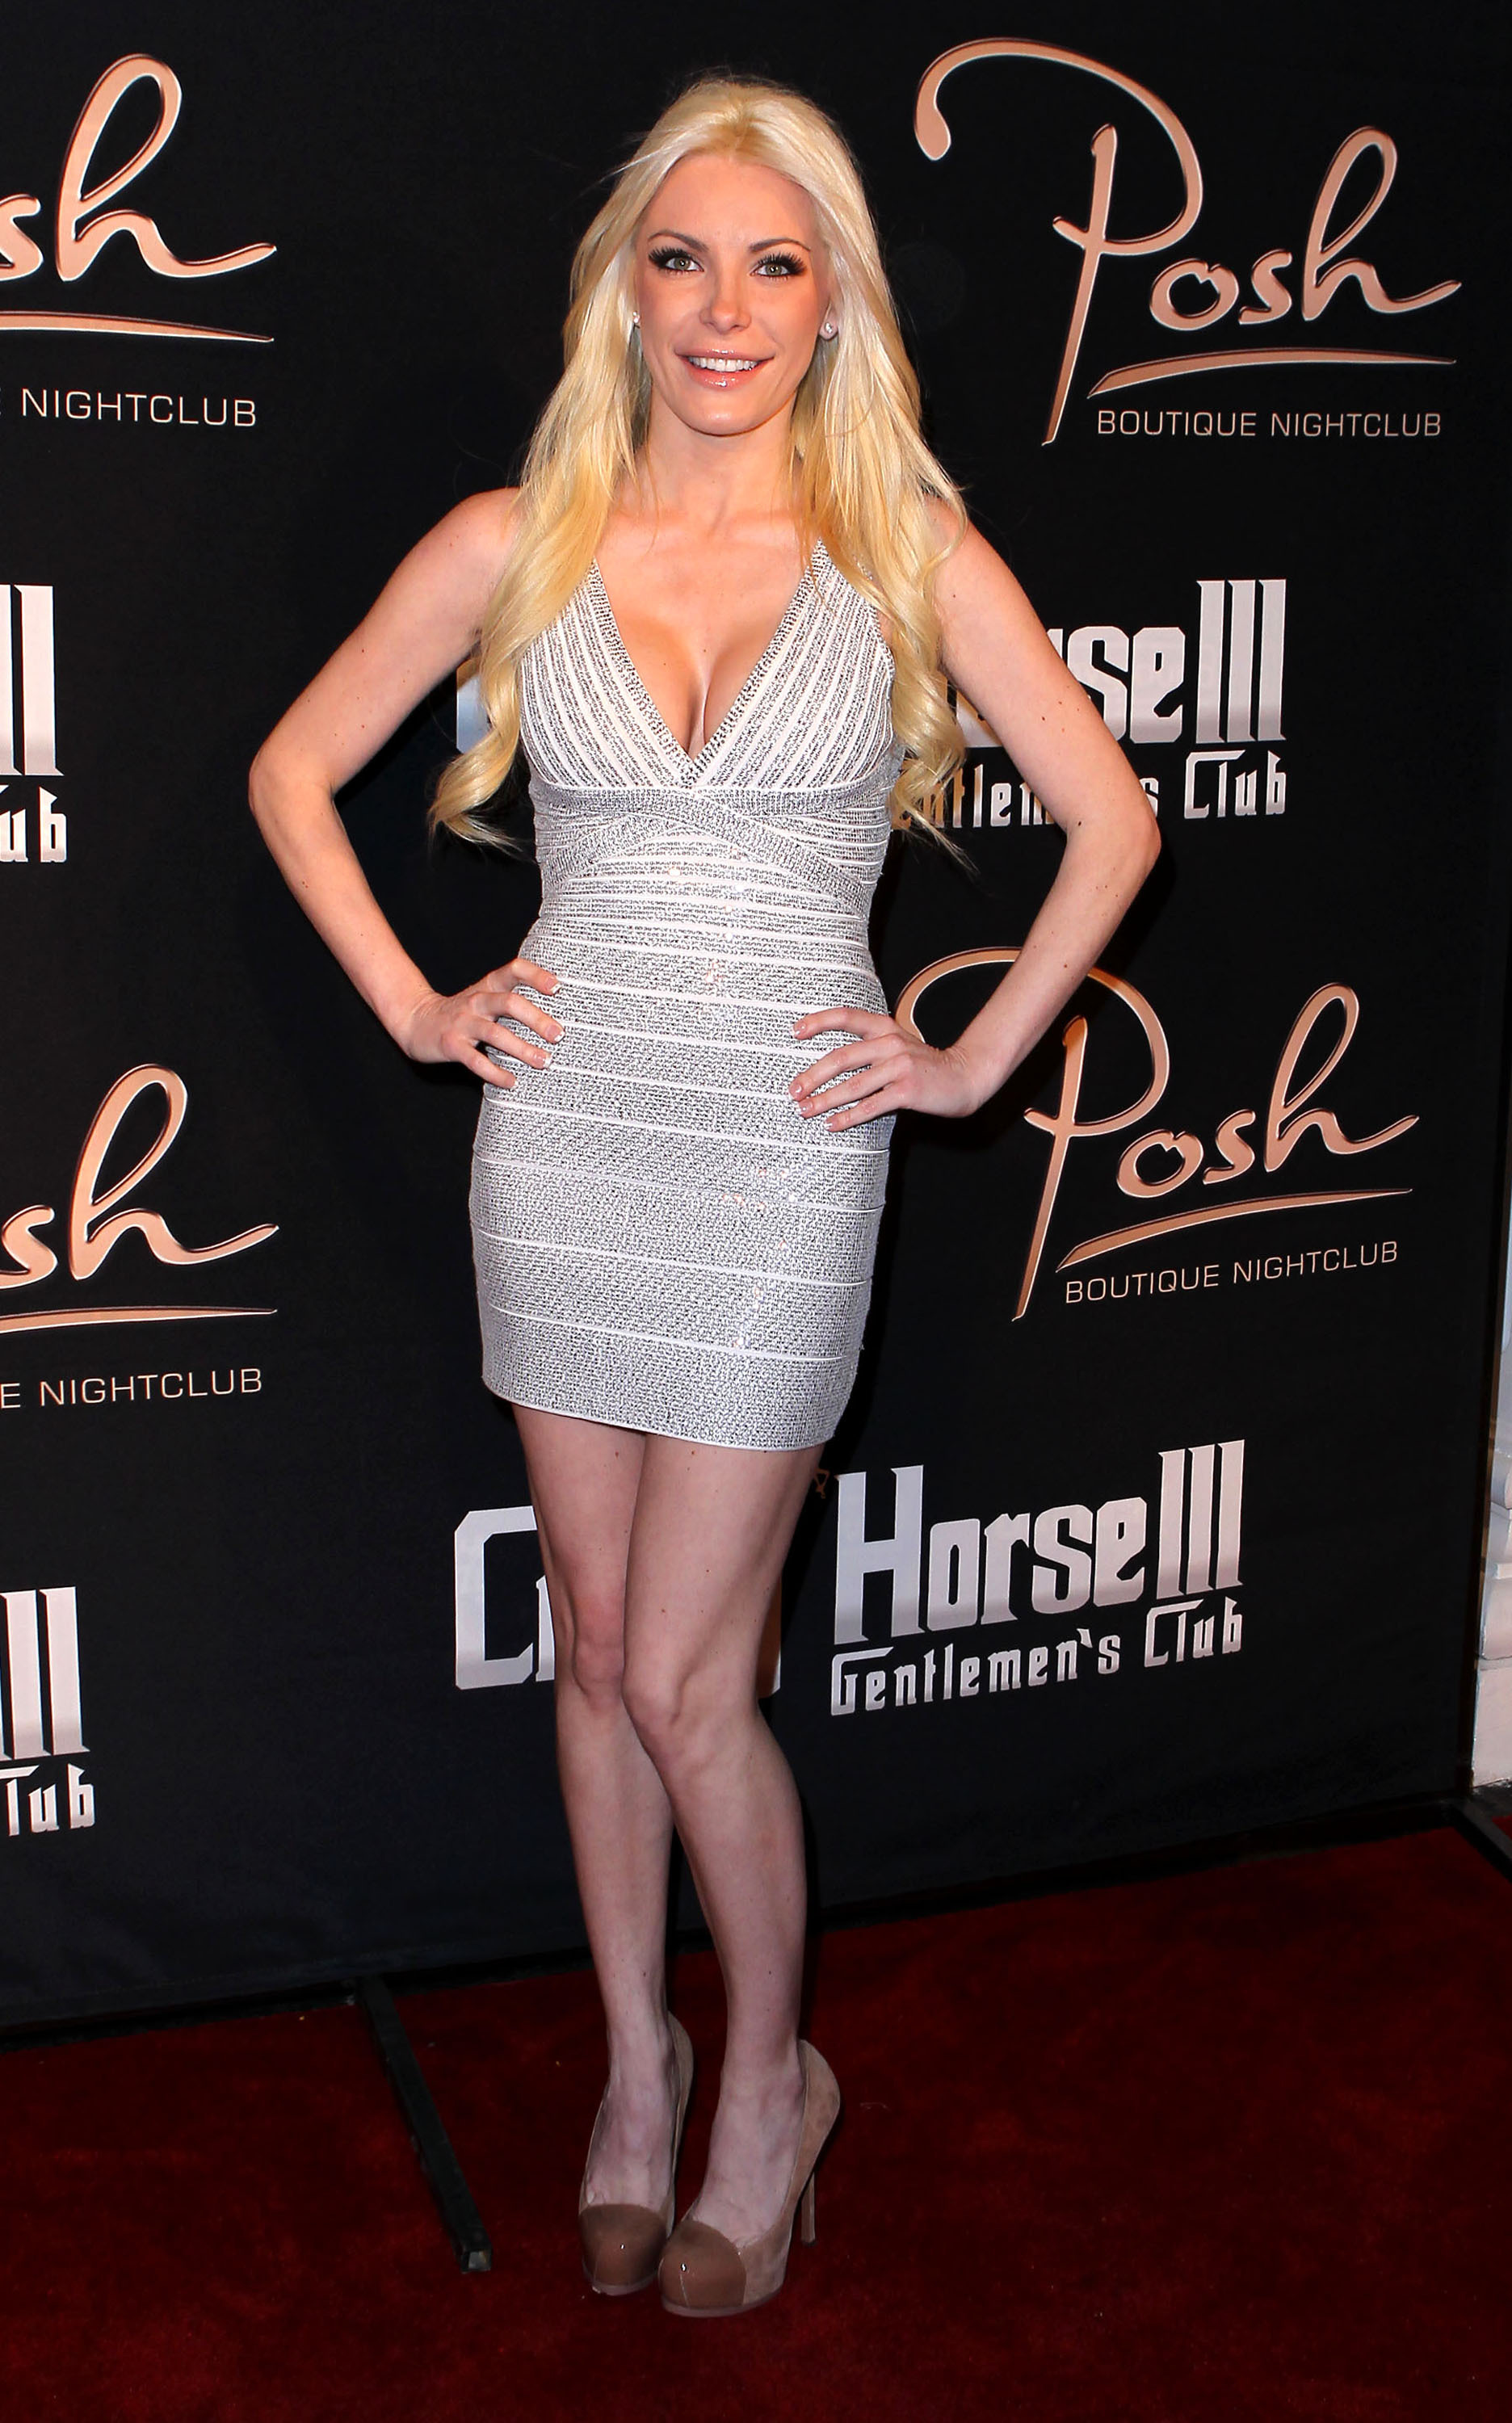 Crystal Harris has been diagnosed with Lyme Disease